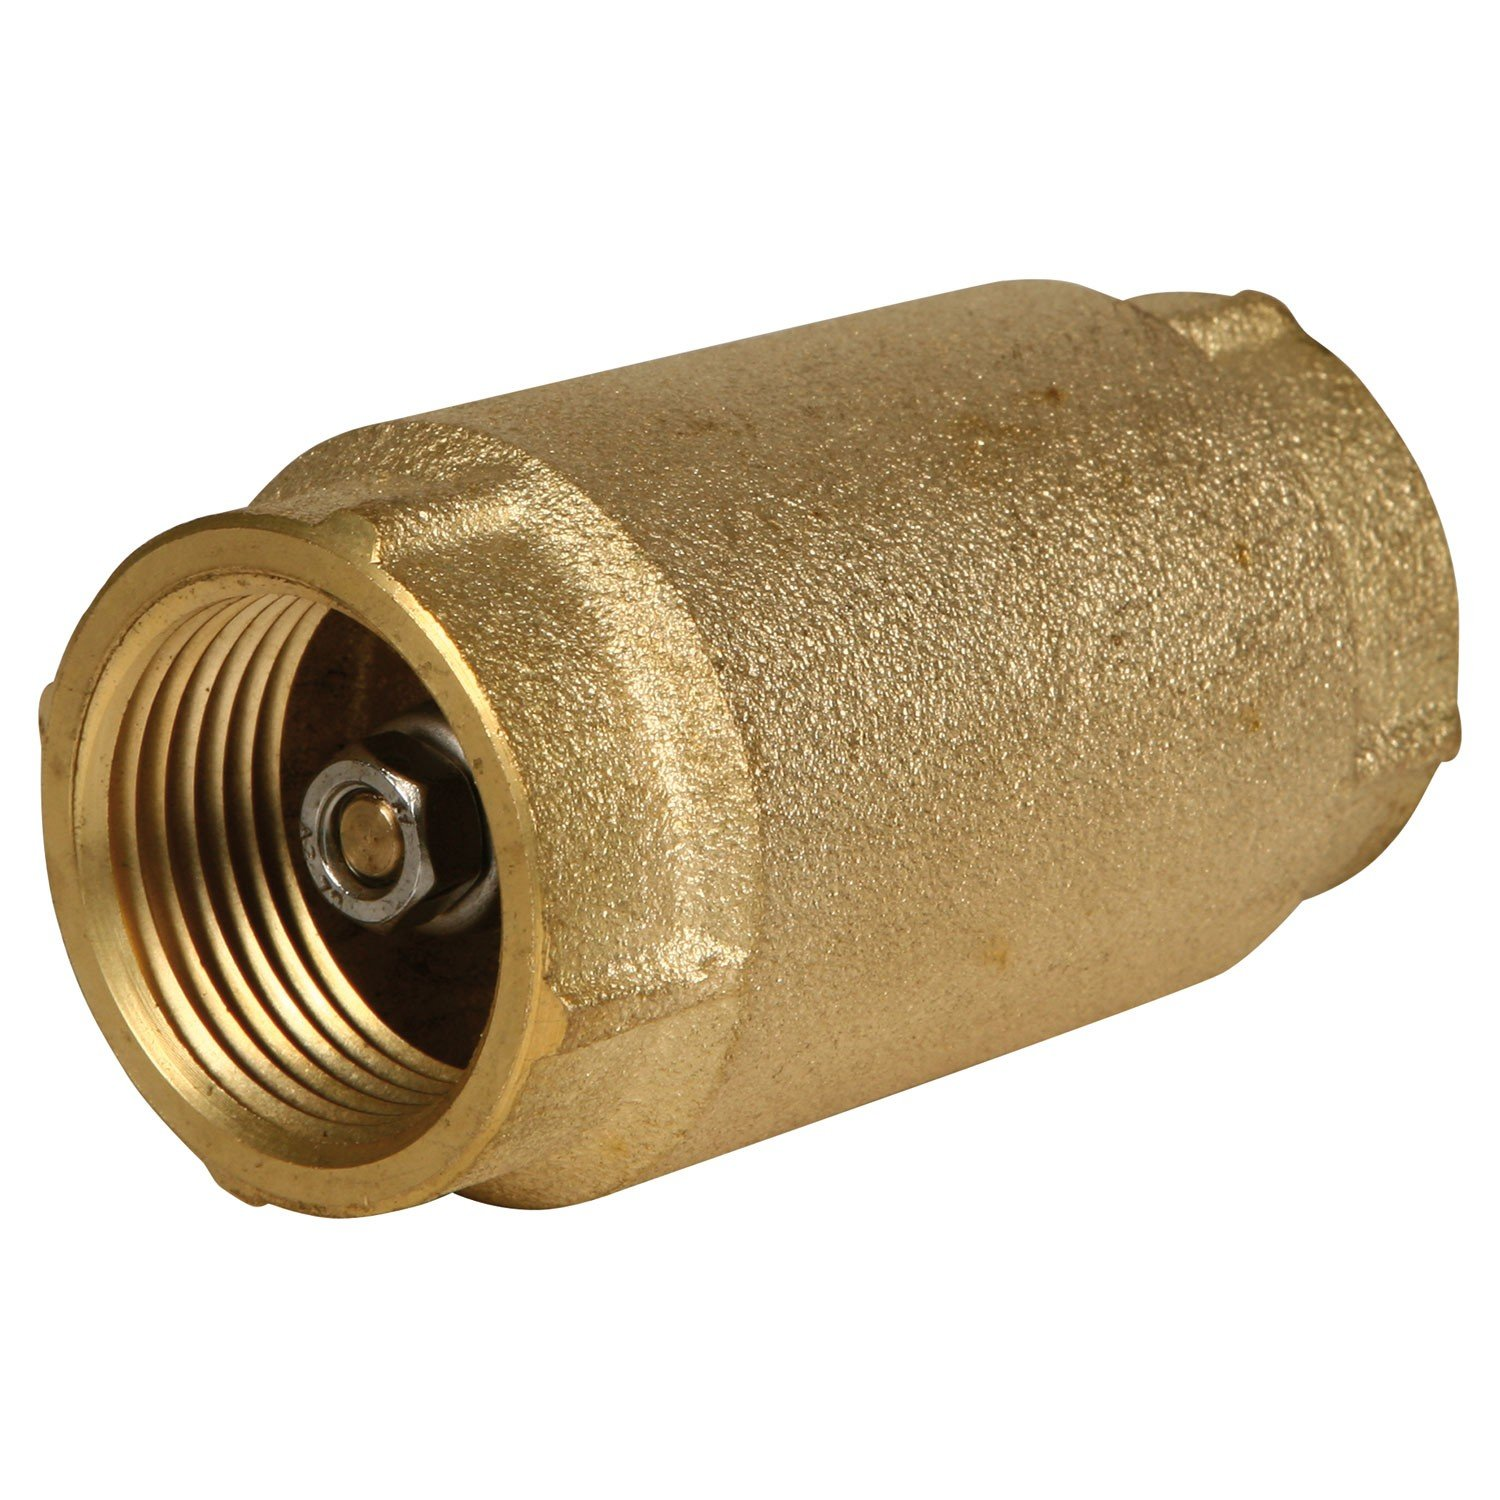 1'' AMERICAN GRANBY NO LEAD CHECK VALVE CVNL100BS BRASS for WATER WELL PUMP PRESSURE TANK INSTALLATION